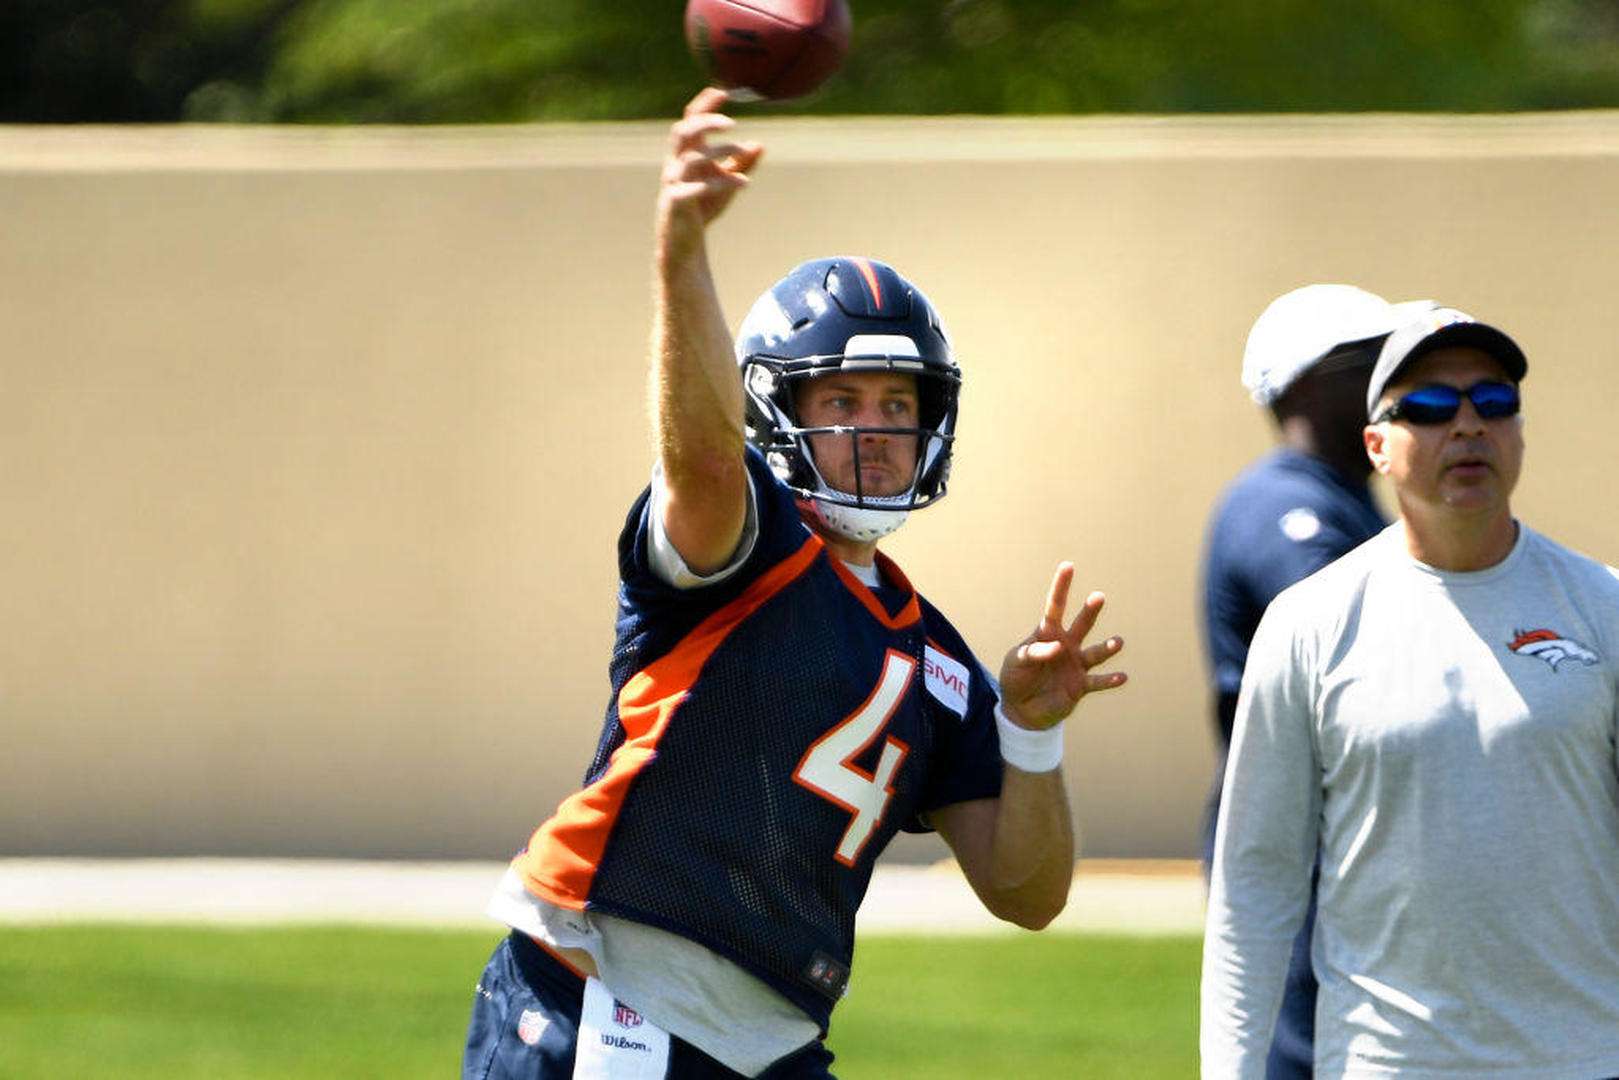 Chris Harris sees Broncos scoring 'at least 30 a game' with Case Keenum under center